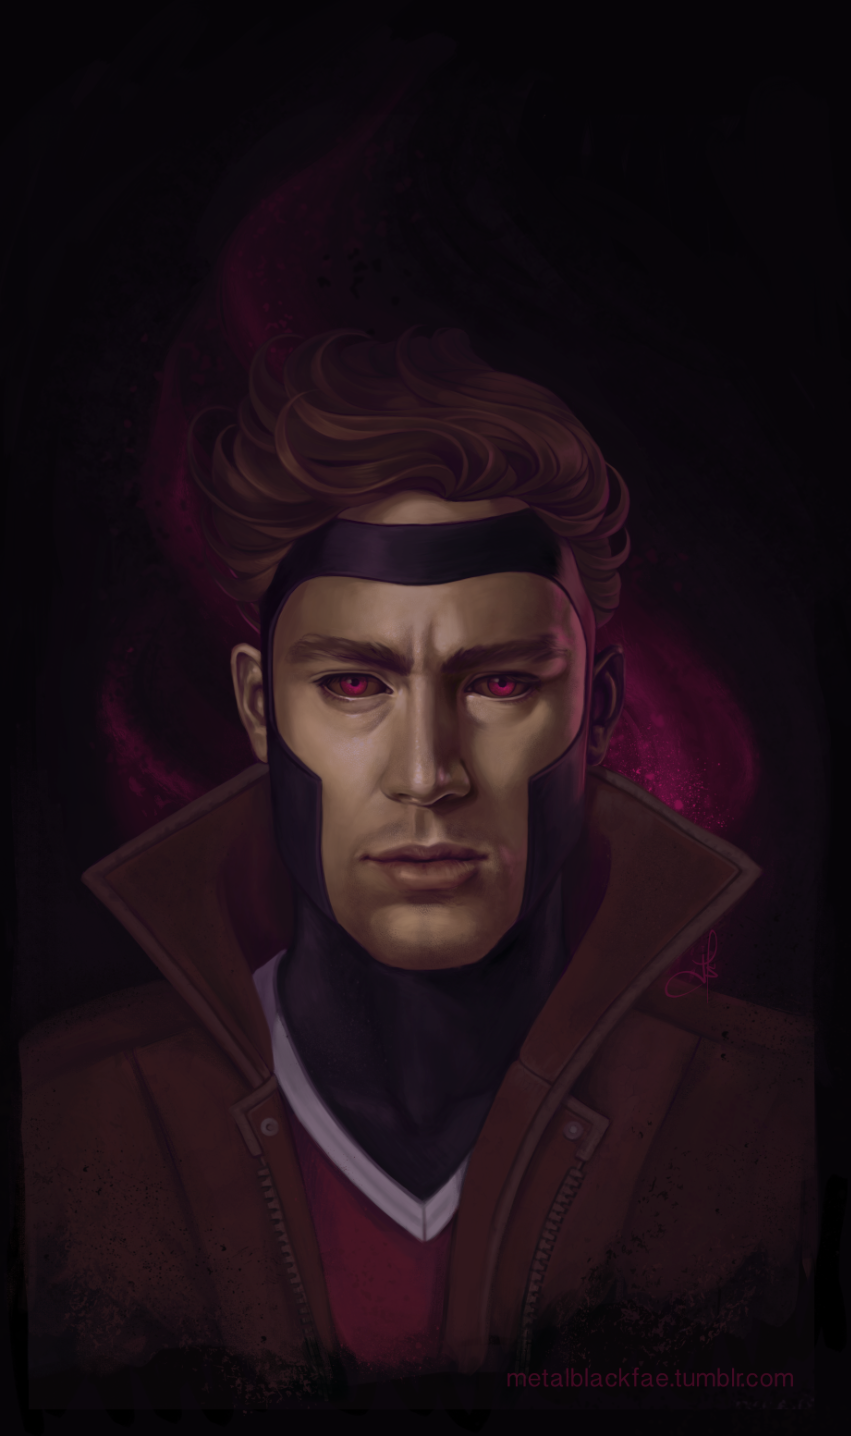 Fan-Made Channing Tatum Gambit Art